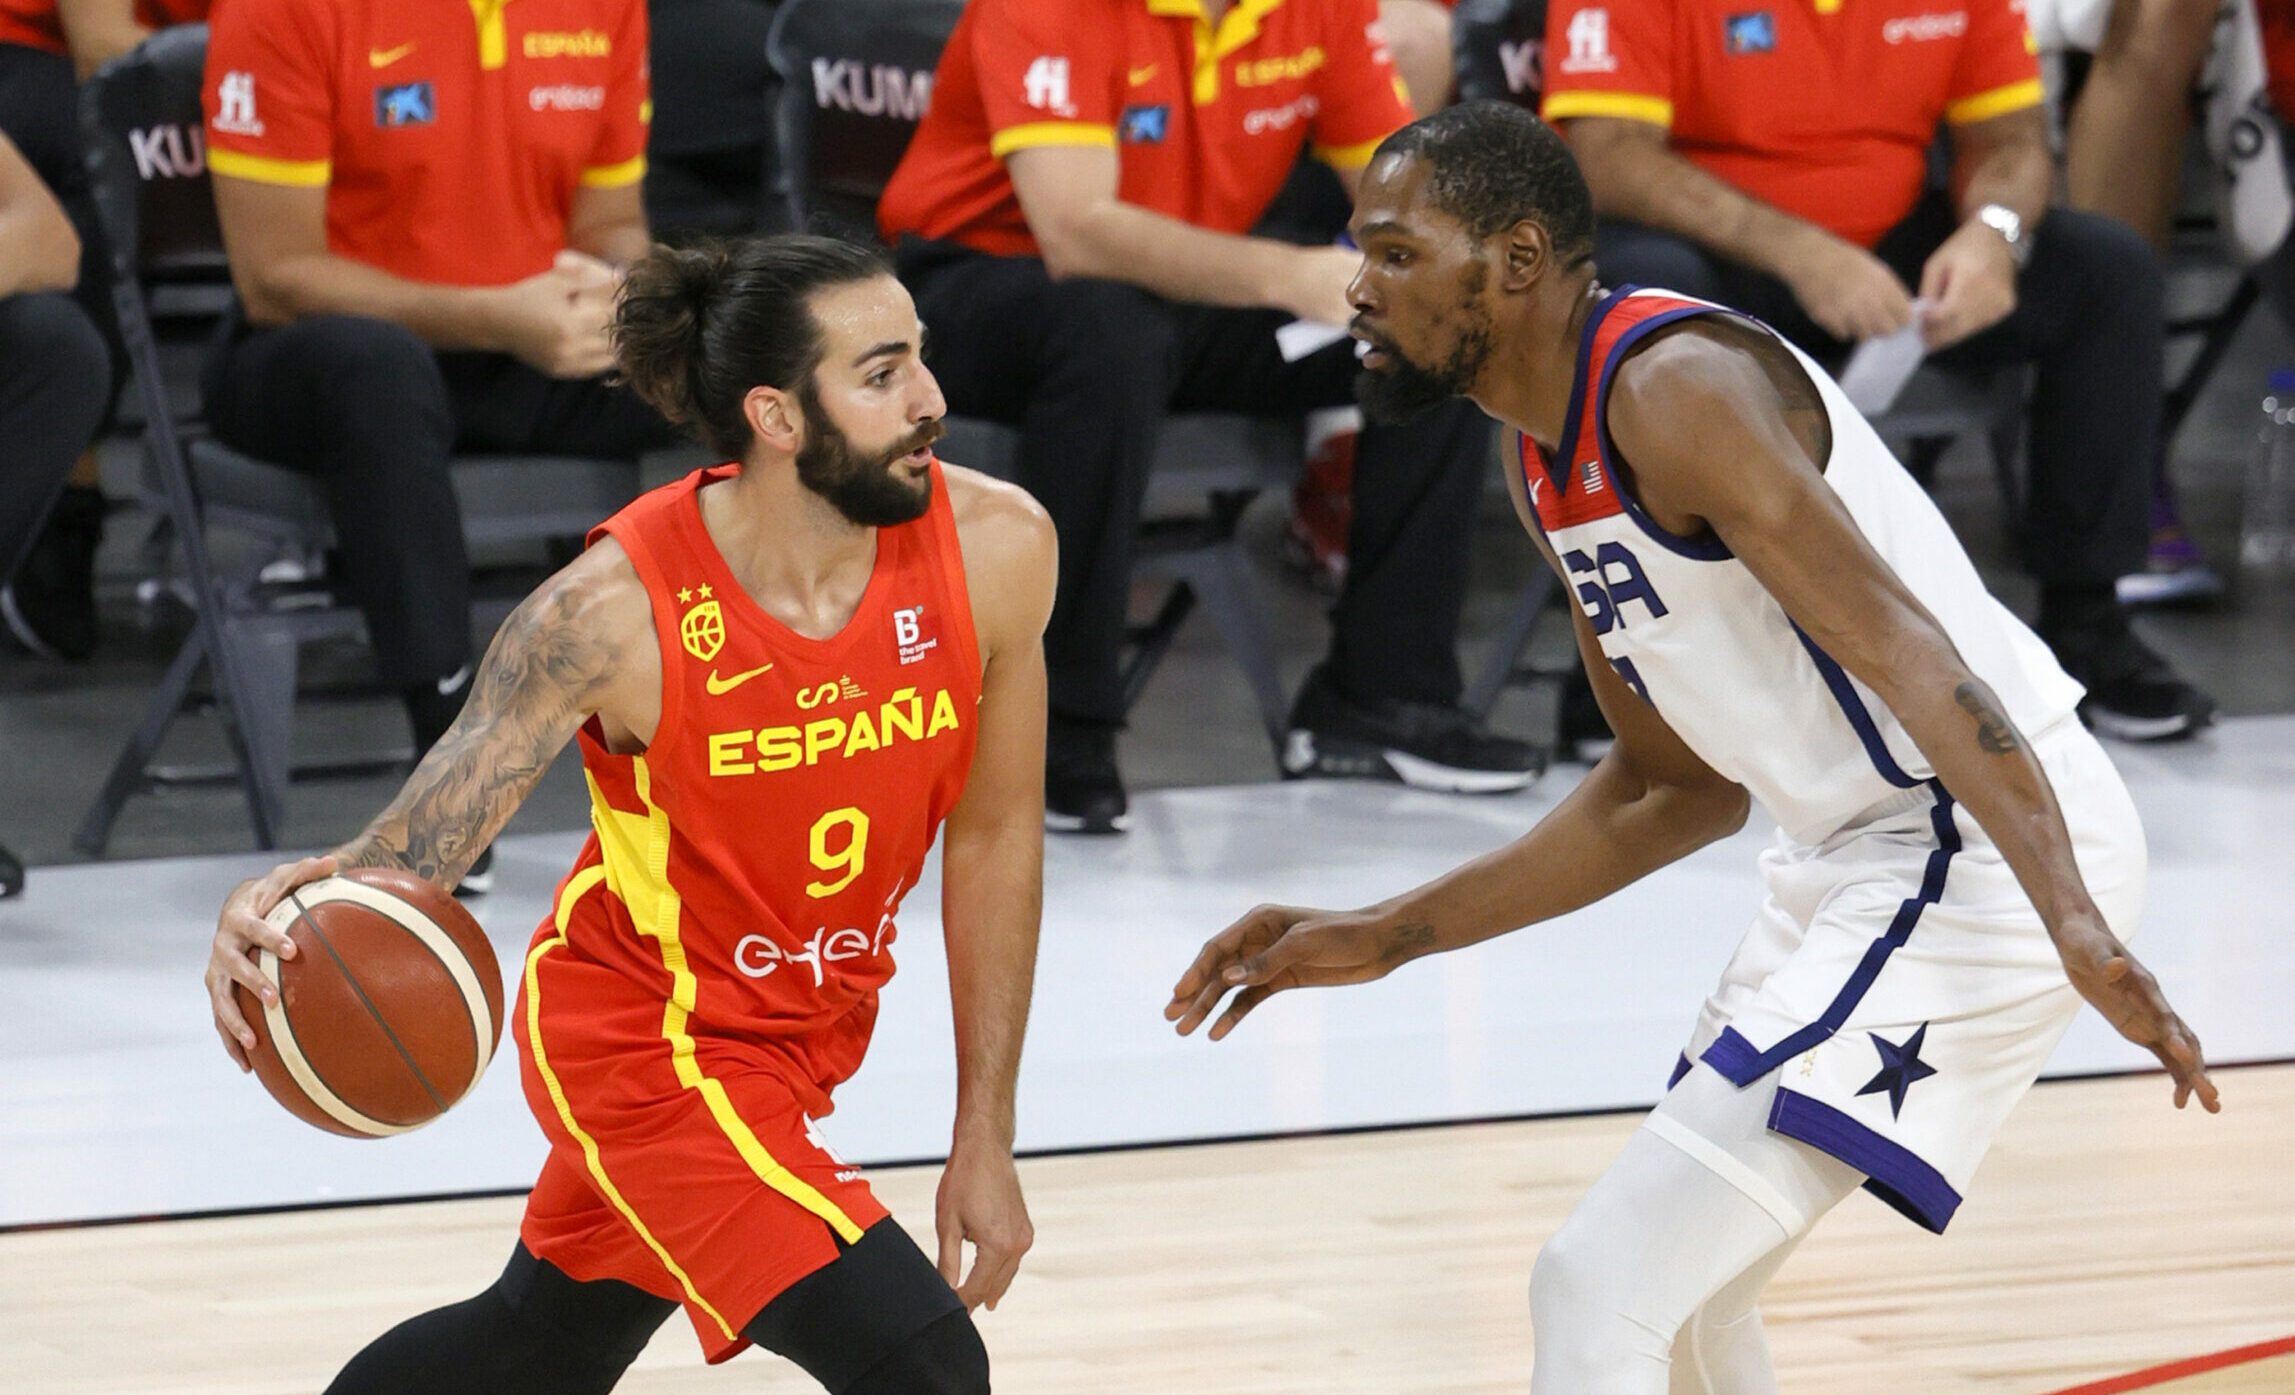 Quarterfinals Preview: USA faces Spain in next round